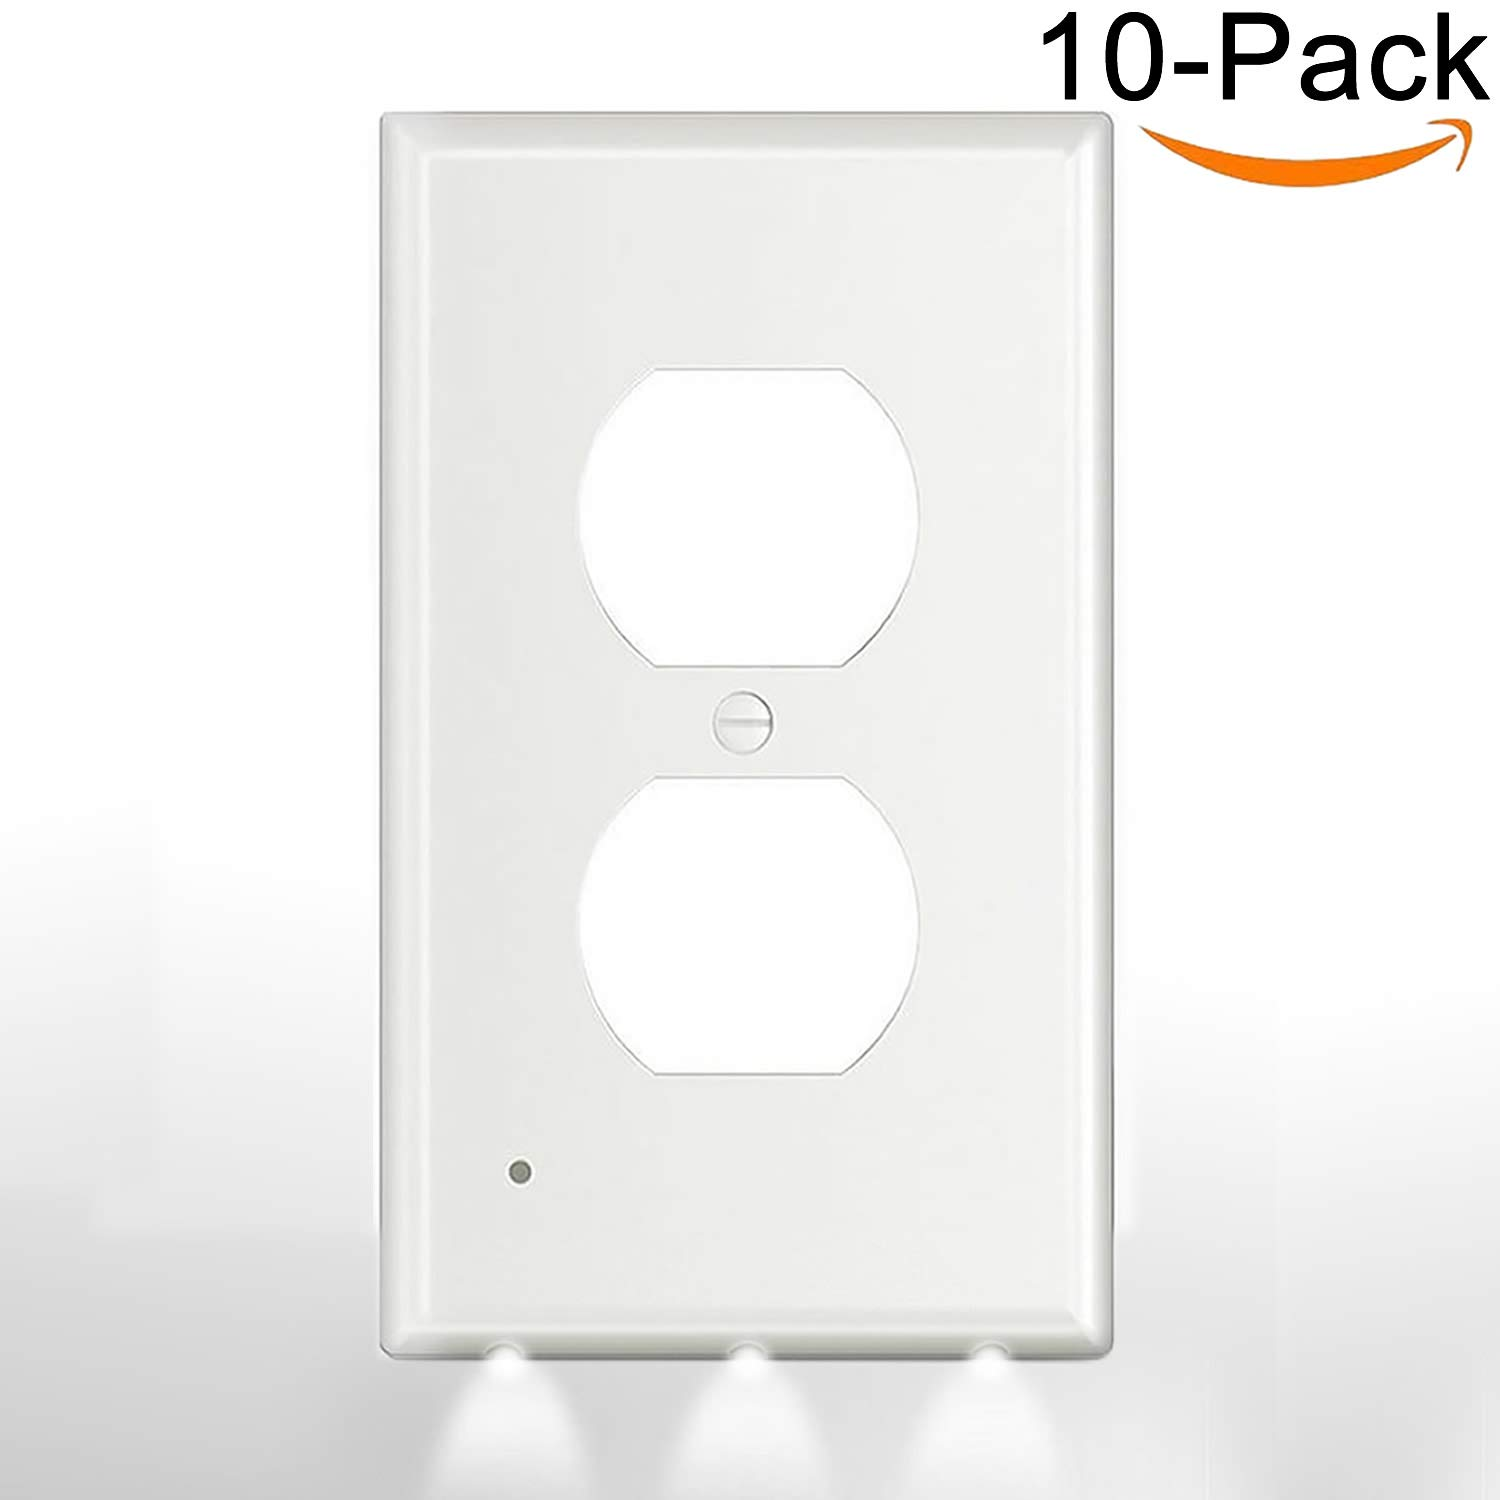 10Pack Duplex Electrical Decorator Receptacle Cover With Night Light Sensor,3-Led NightLight,Outlet Wall Plate,1-Gang,Standard Décor Outlet Covers,Not Work With GFIC,For Kid,Bedroom,Snow-White